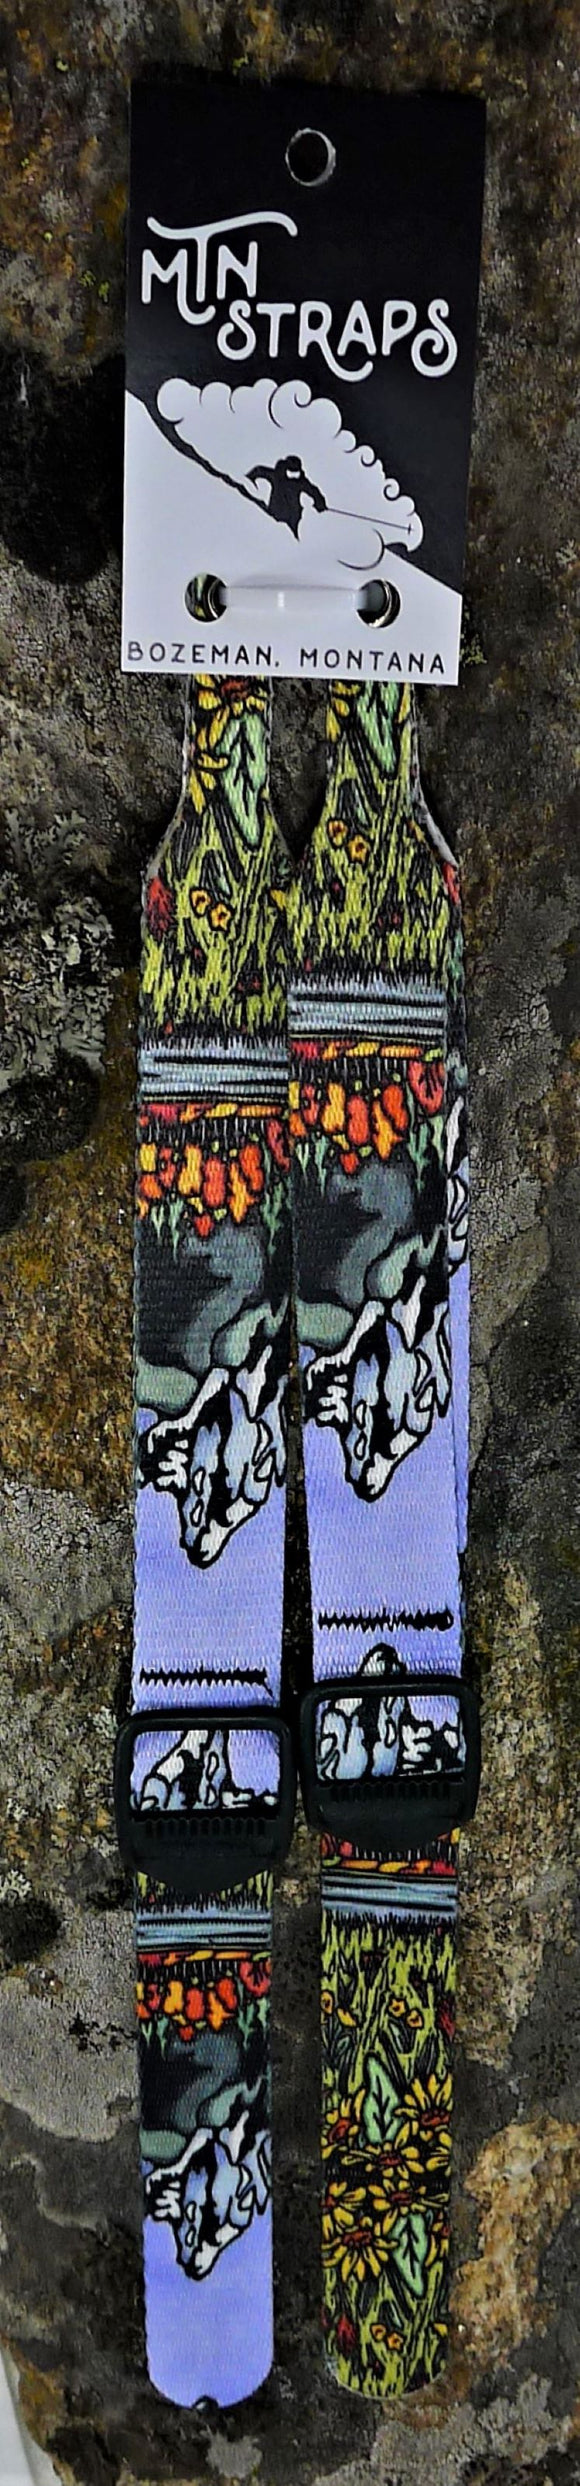 Tetons Ski Pole Straps - Sarah Angst Art Greeting Cards, Giclee Prints, Jewelry, More